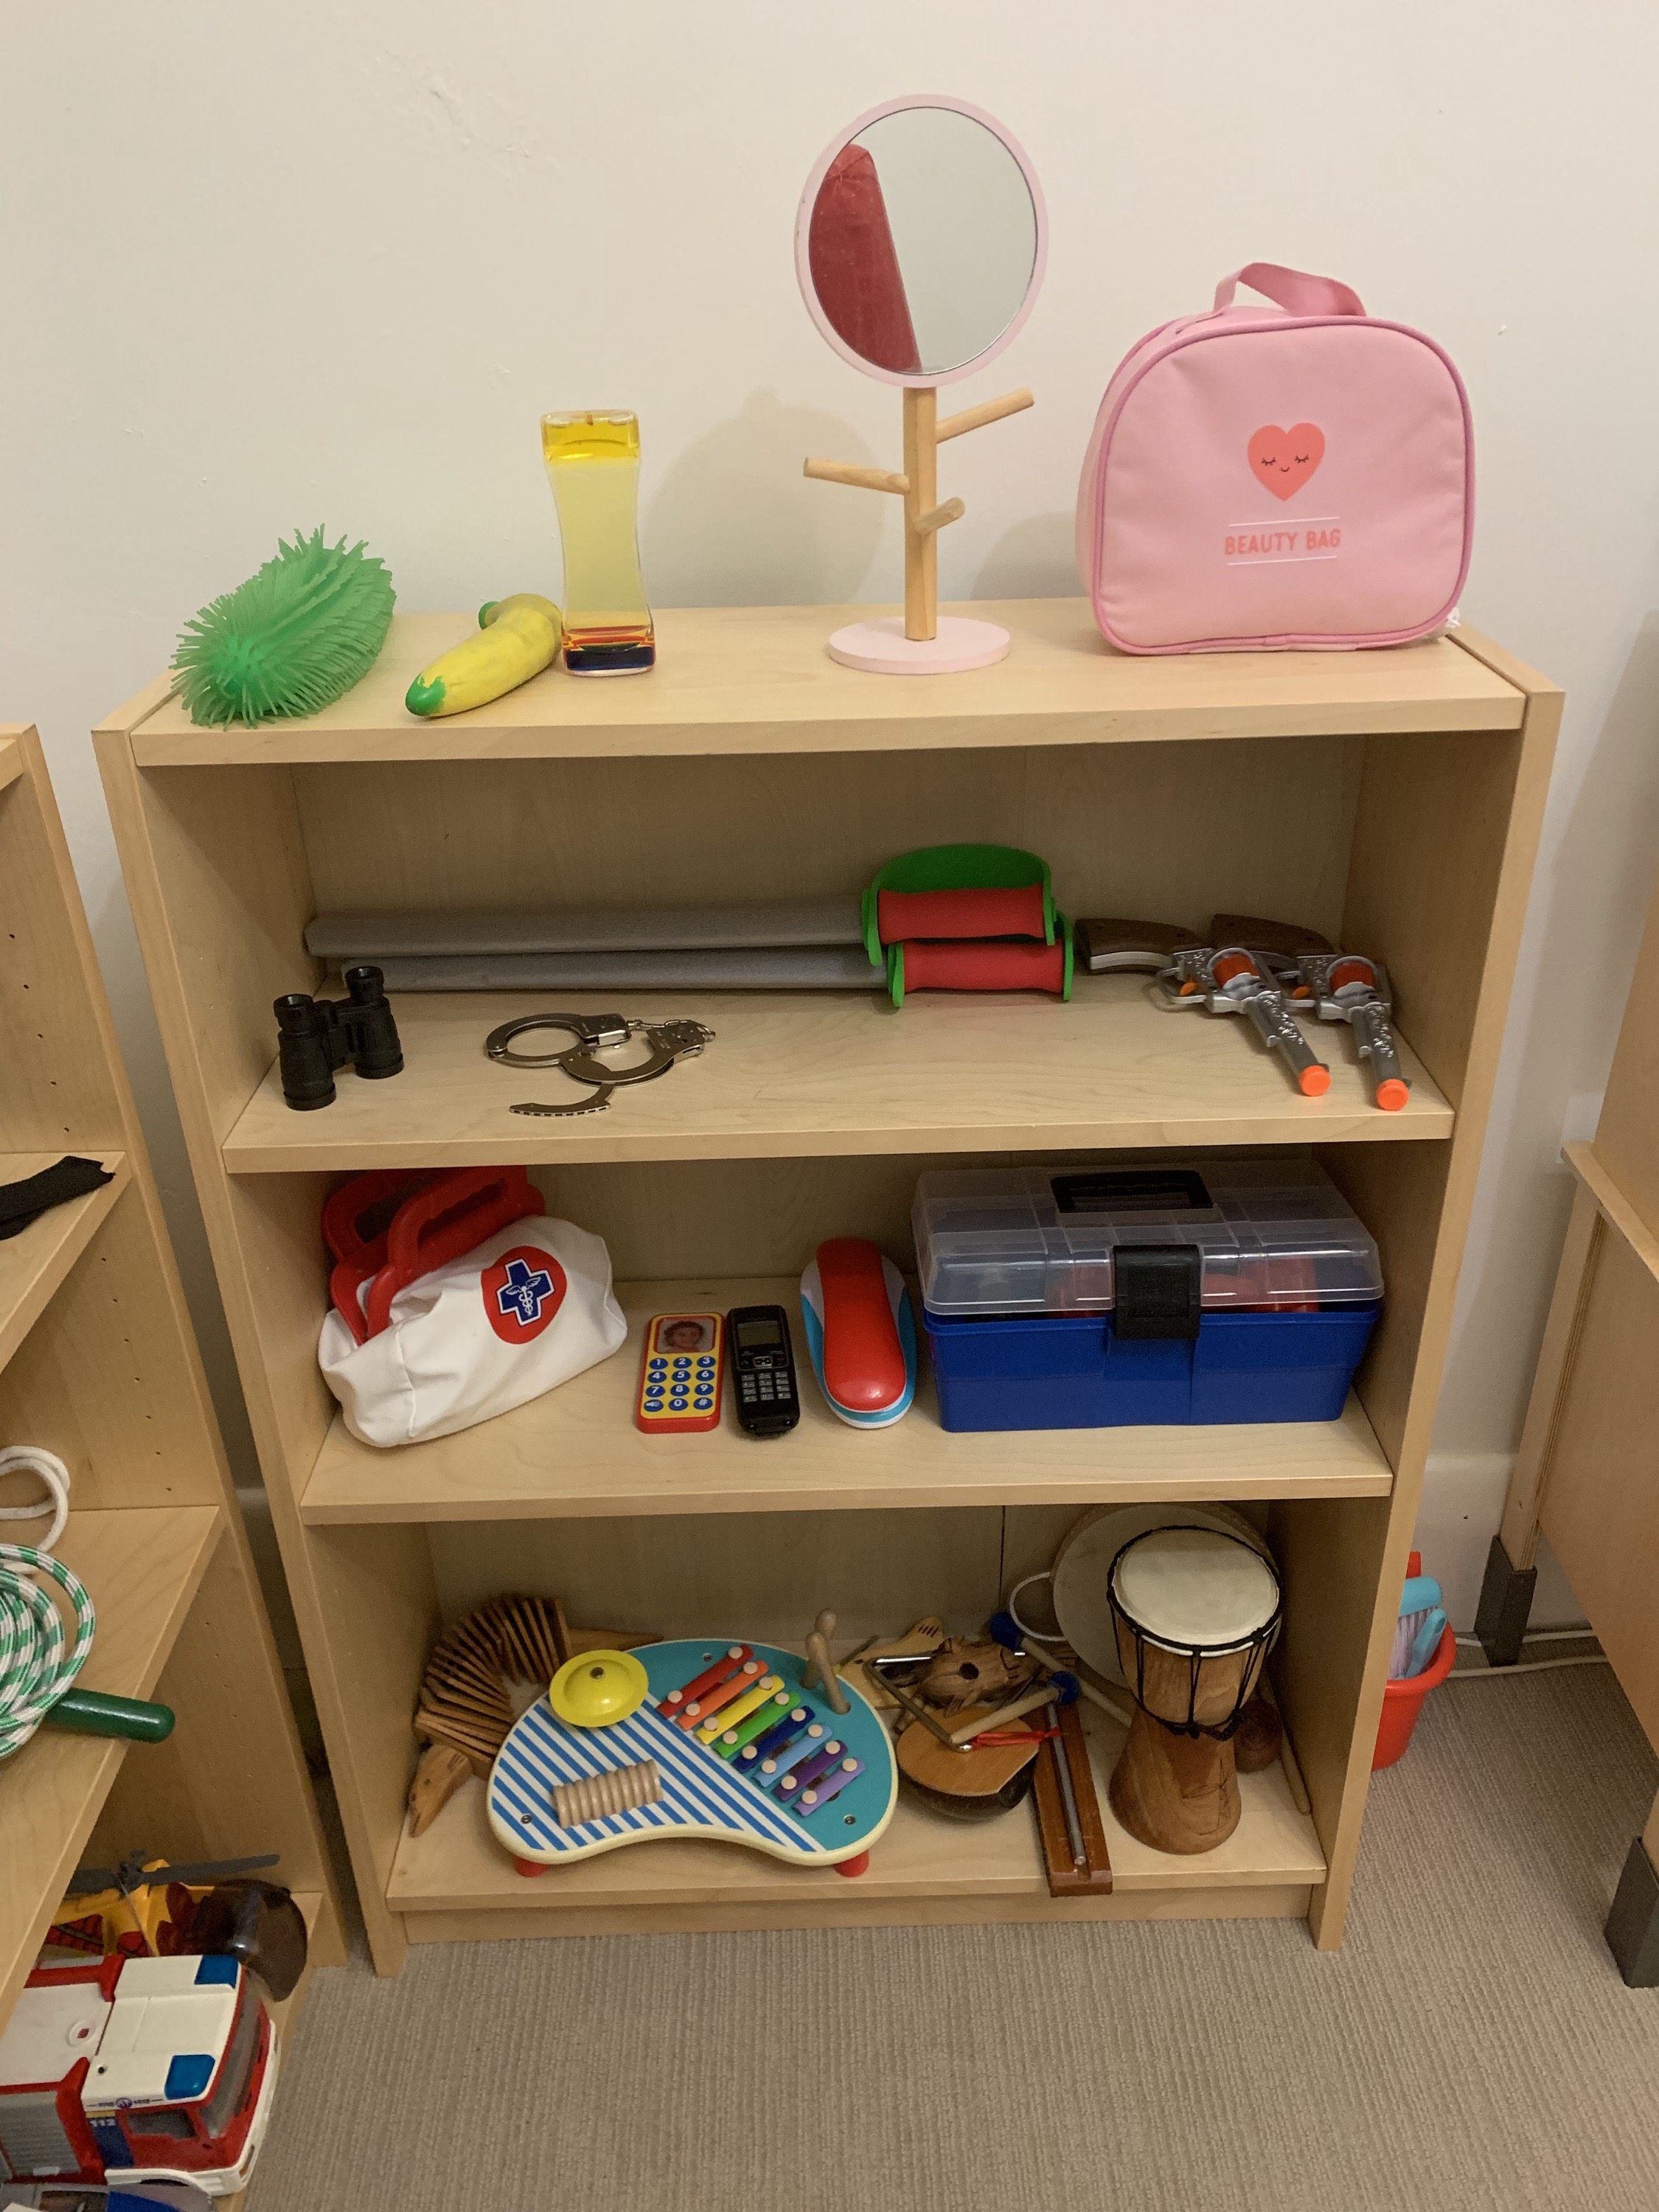 Sensory play, aggressive release, role play and music